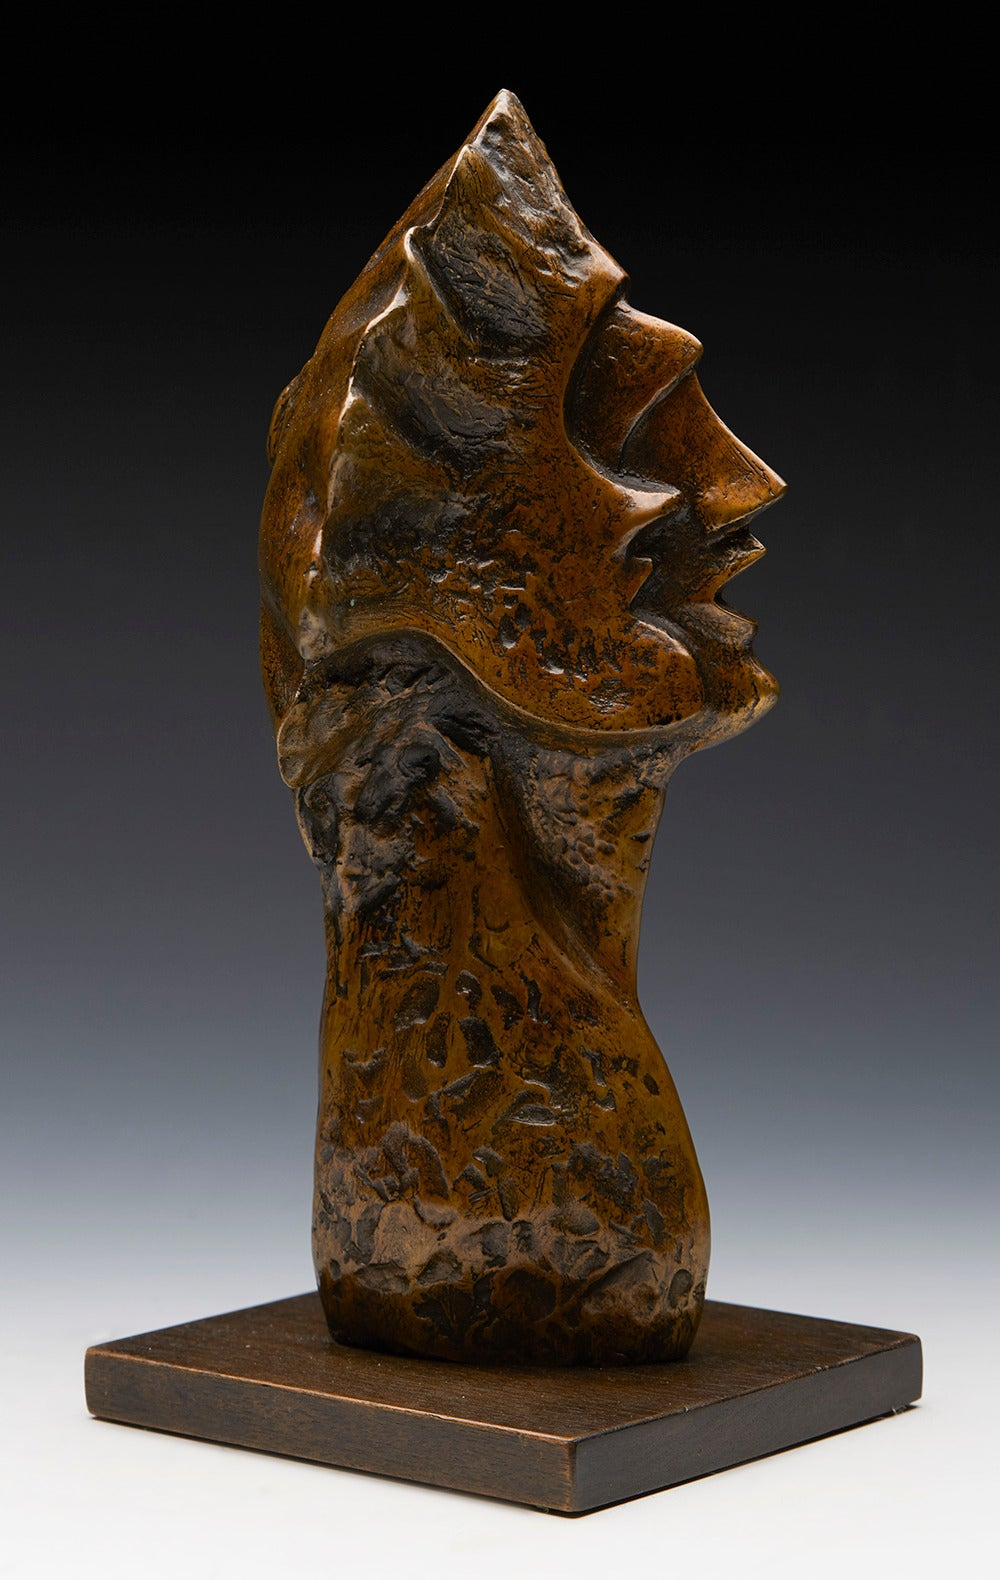 Profile heads is a limited edition bronze head carved in profile and mounted on a rectangular wooden plinth. The head has a textured and smooth finish with a wonderful bonze patination. The bronze is numbered 0 of an edition of 7 and is